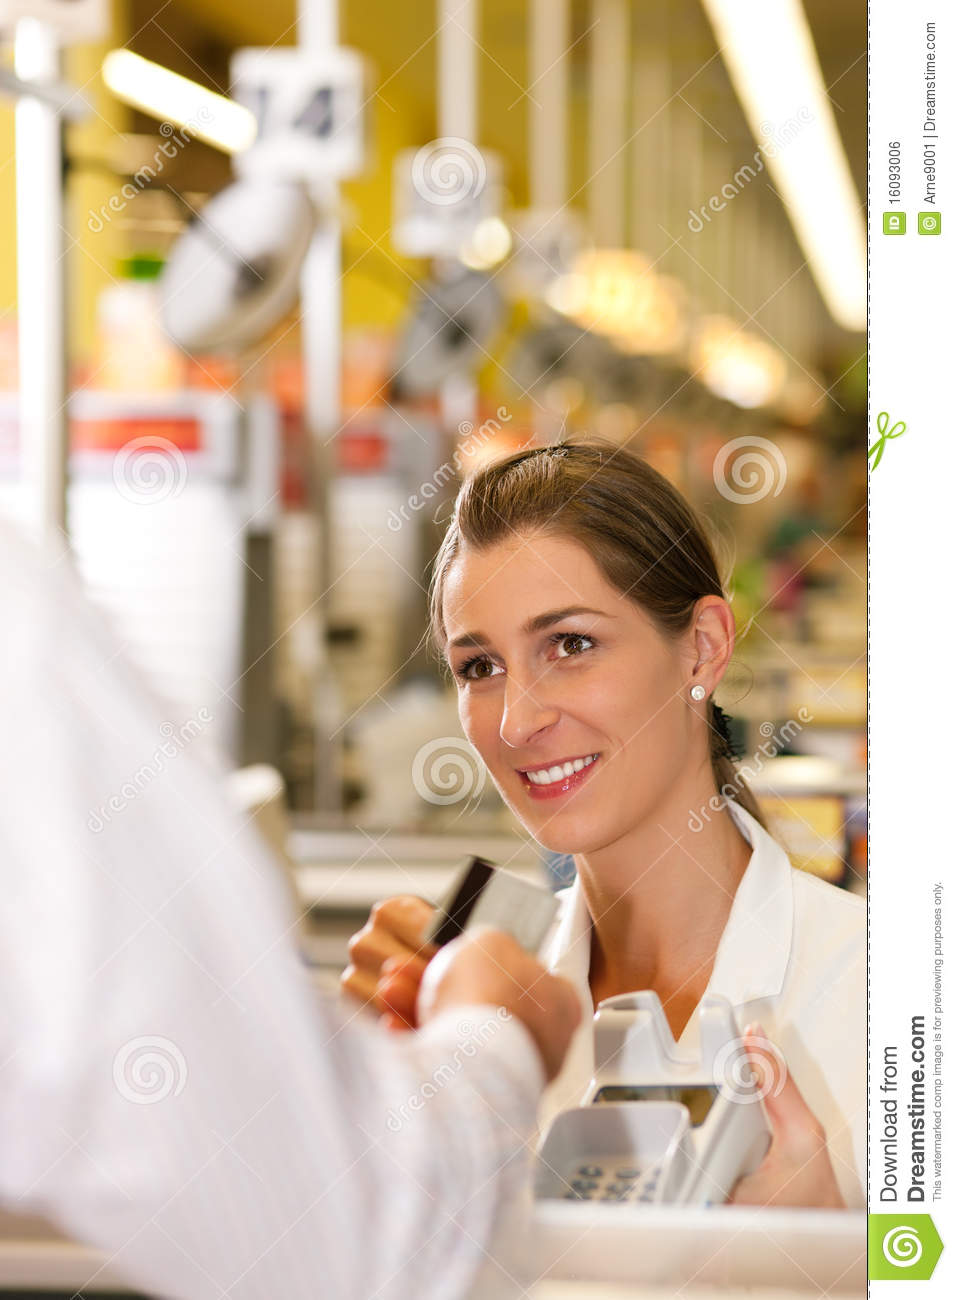 Supermarket Cashier Cashier in supermarket taking